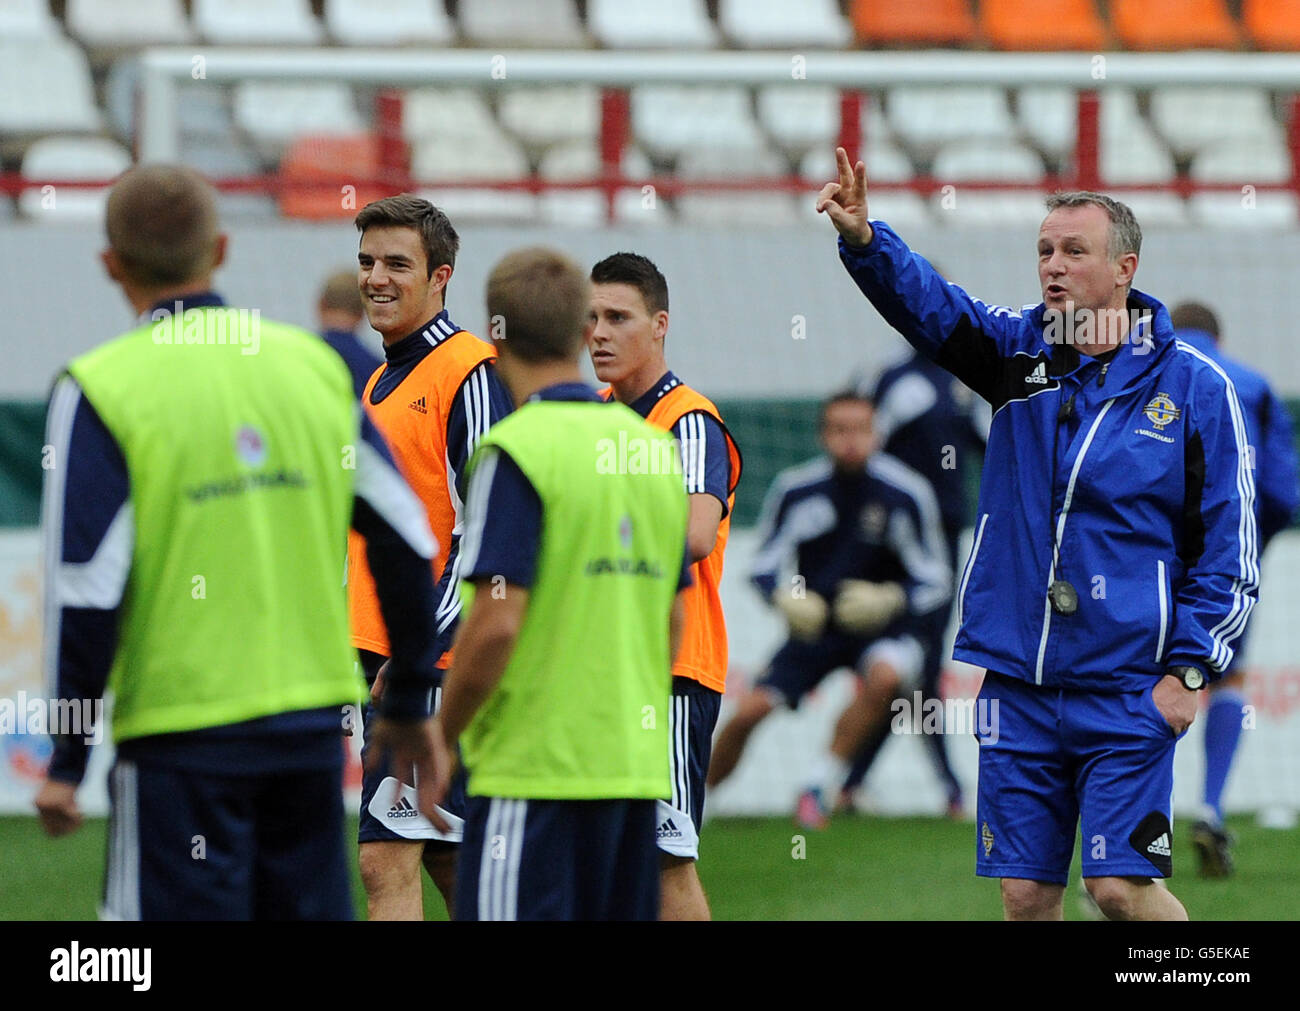 Soccer - 2014 World Cup - Qualifier - Group F - Russia v Northern Ireland - Northern Ireland Training - Lokomotiv - Stock Image